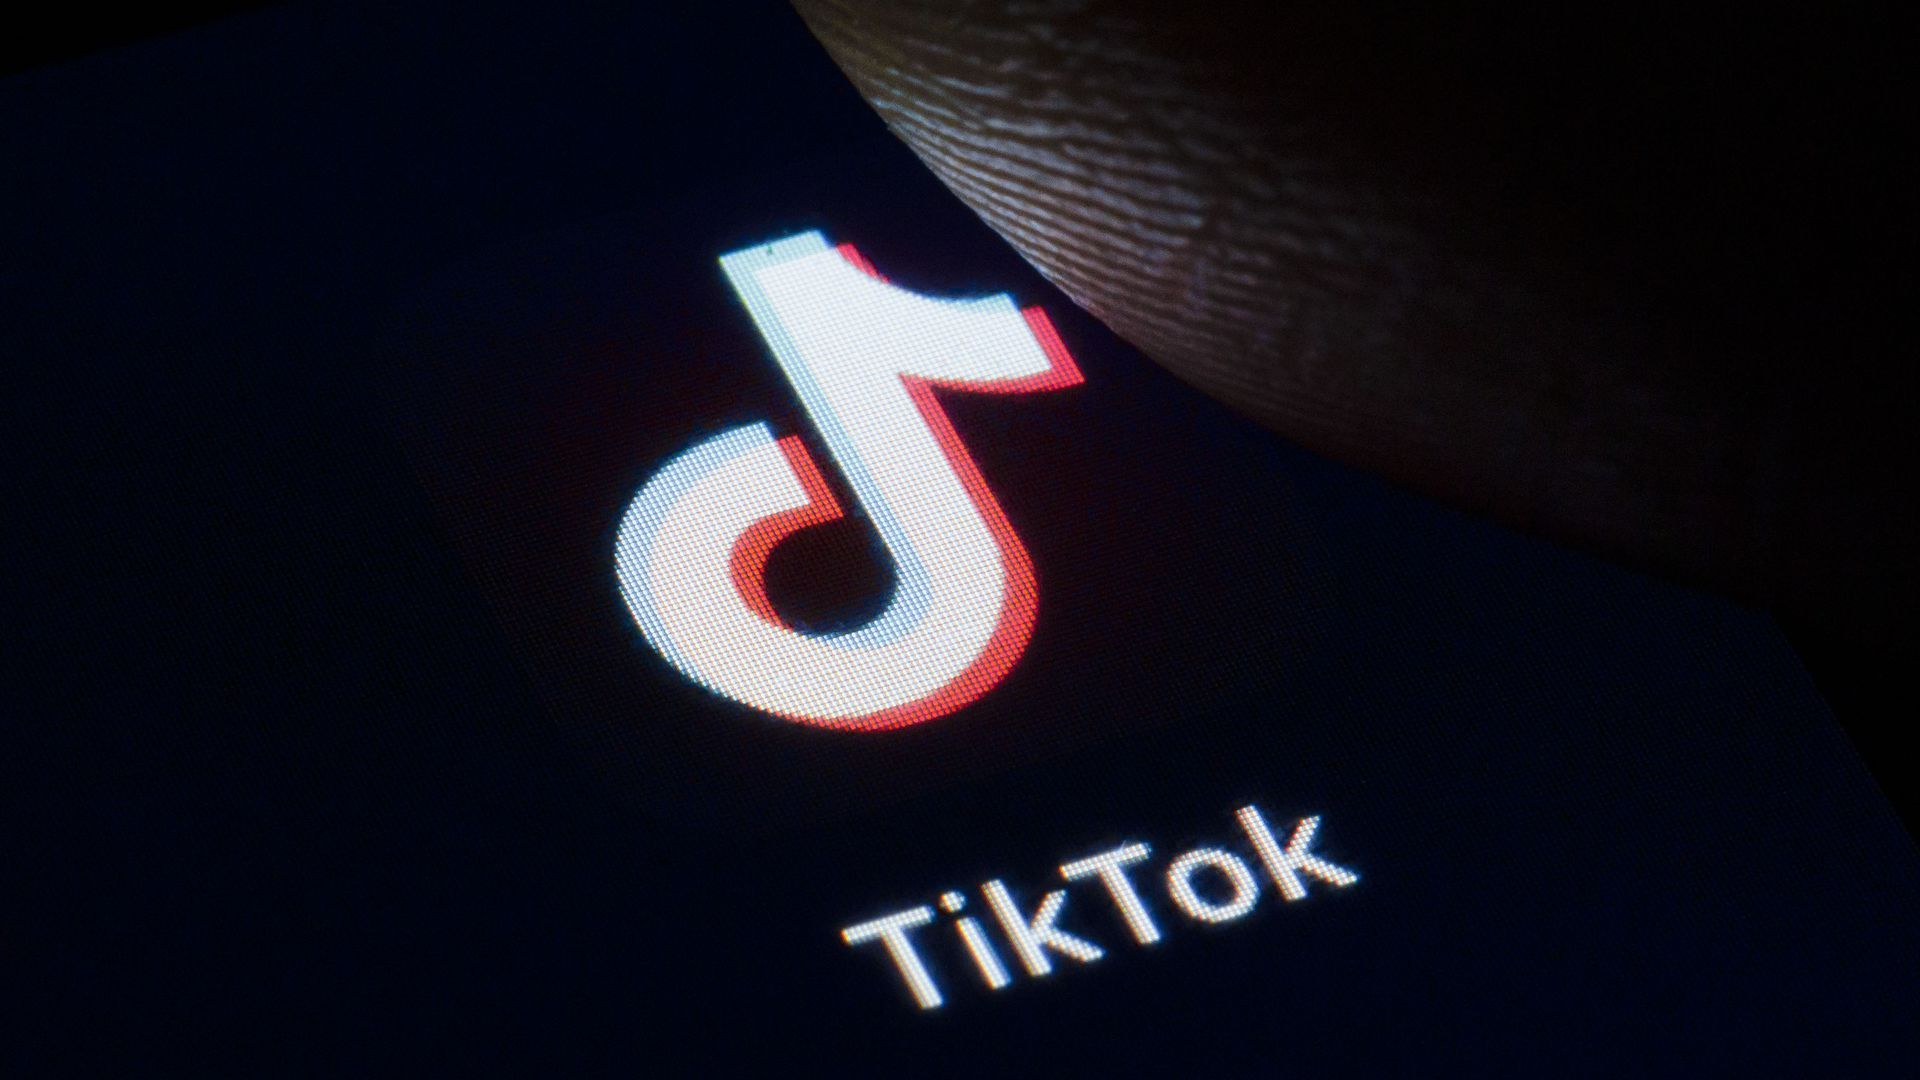 In this image, a thumb hovers over the TikTok logo displayed on a smartphone screen.